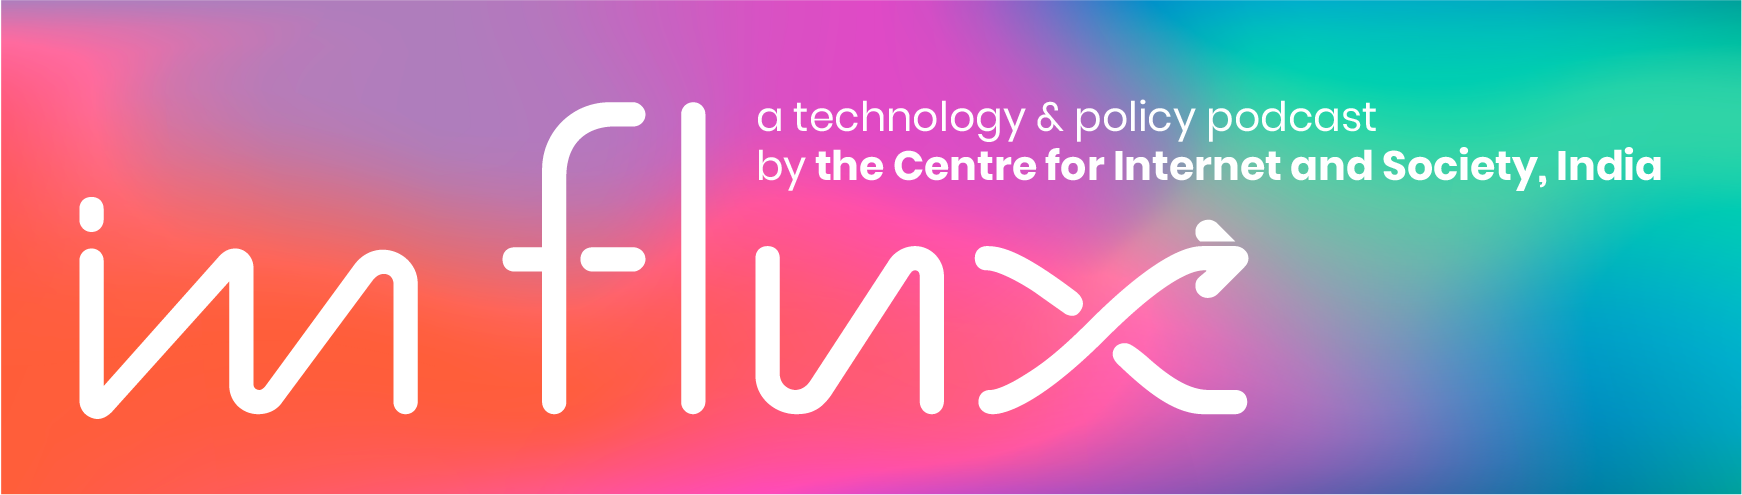 In Flux: a technology and policy podcast by the Centre for Internet and Society